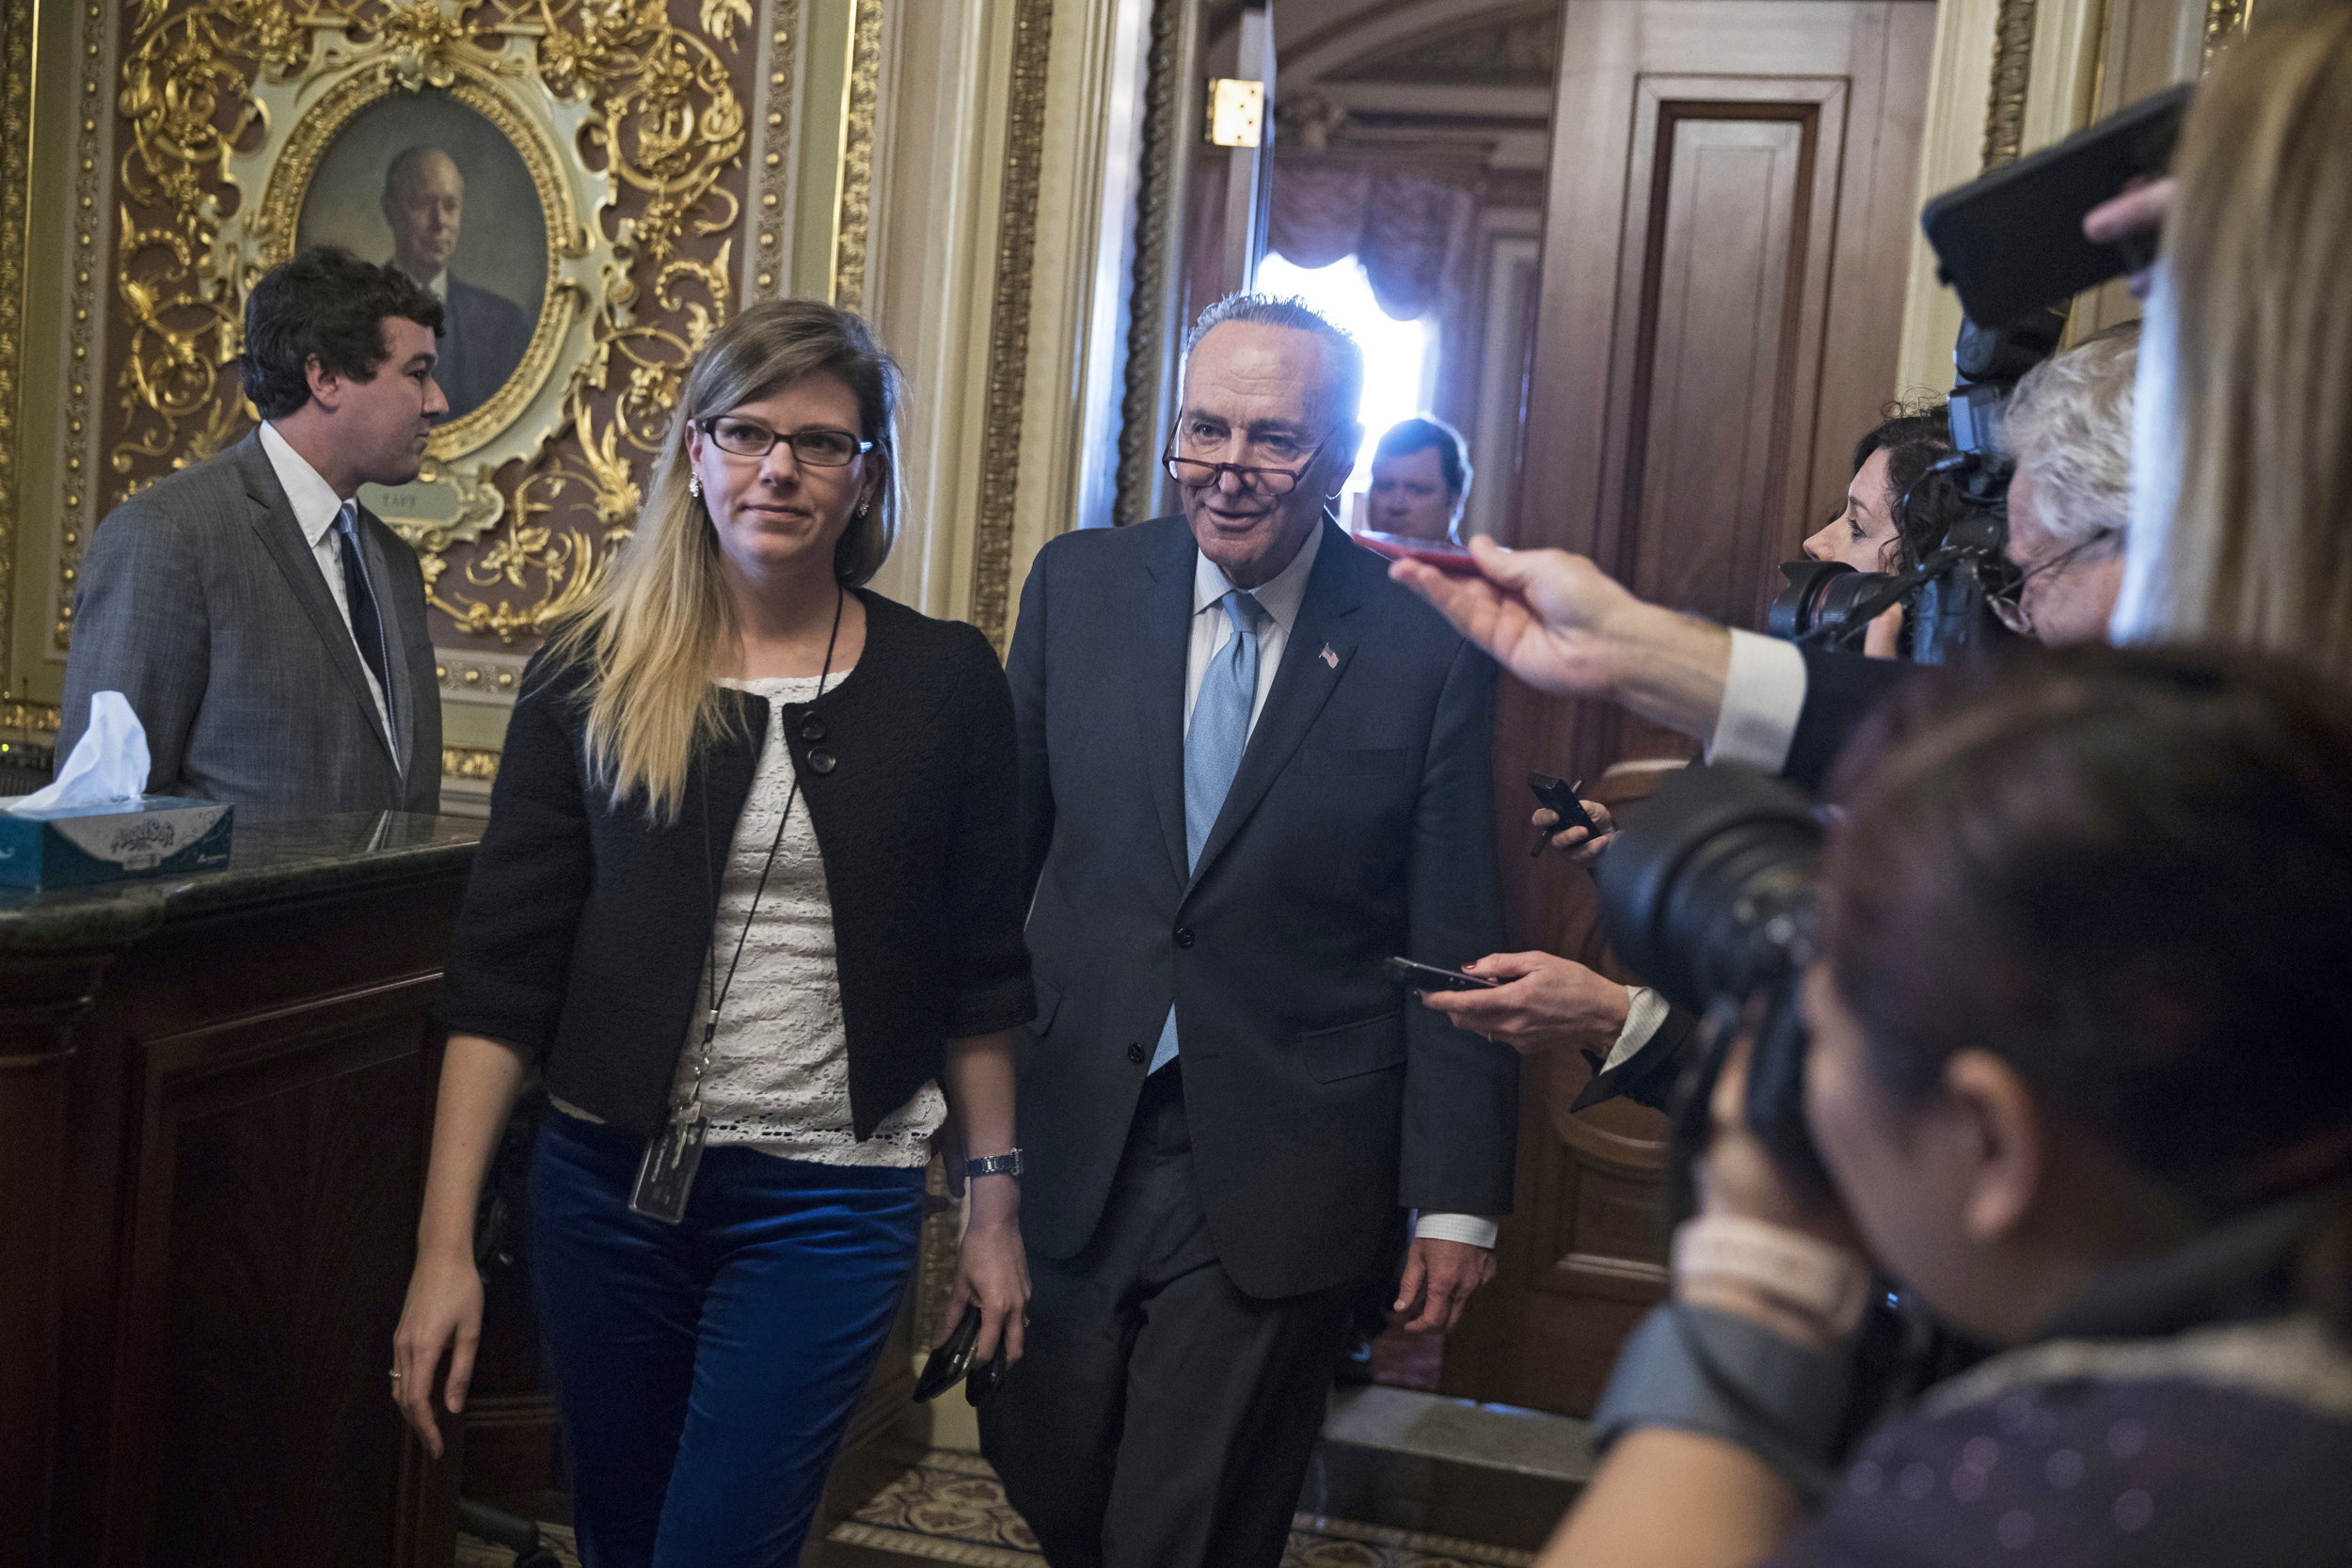 Liberals say Schumer caved to Trump, McConnell